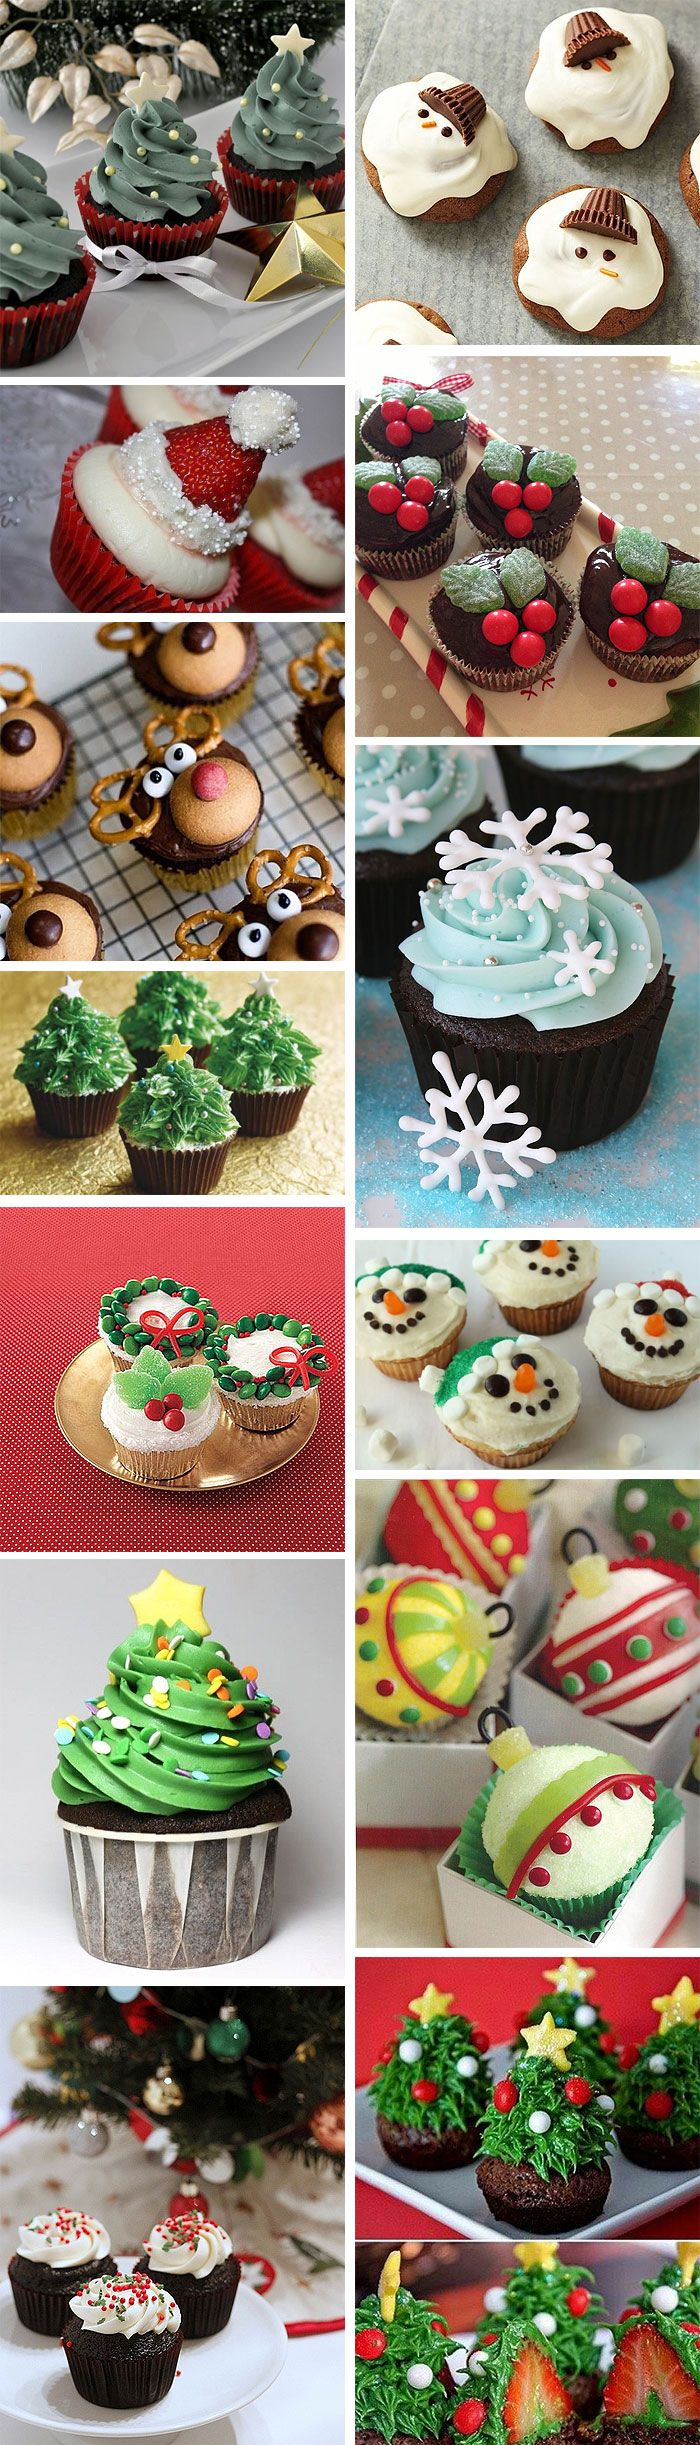 13 clever (and easy) Christmas cupcake decorating ideas-how to decorate Christmas cupcakes